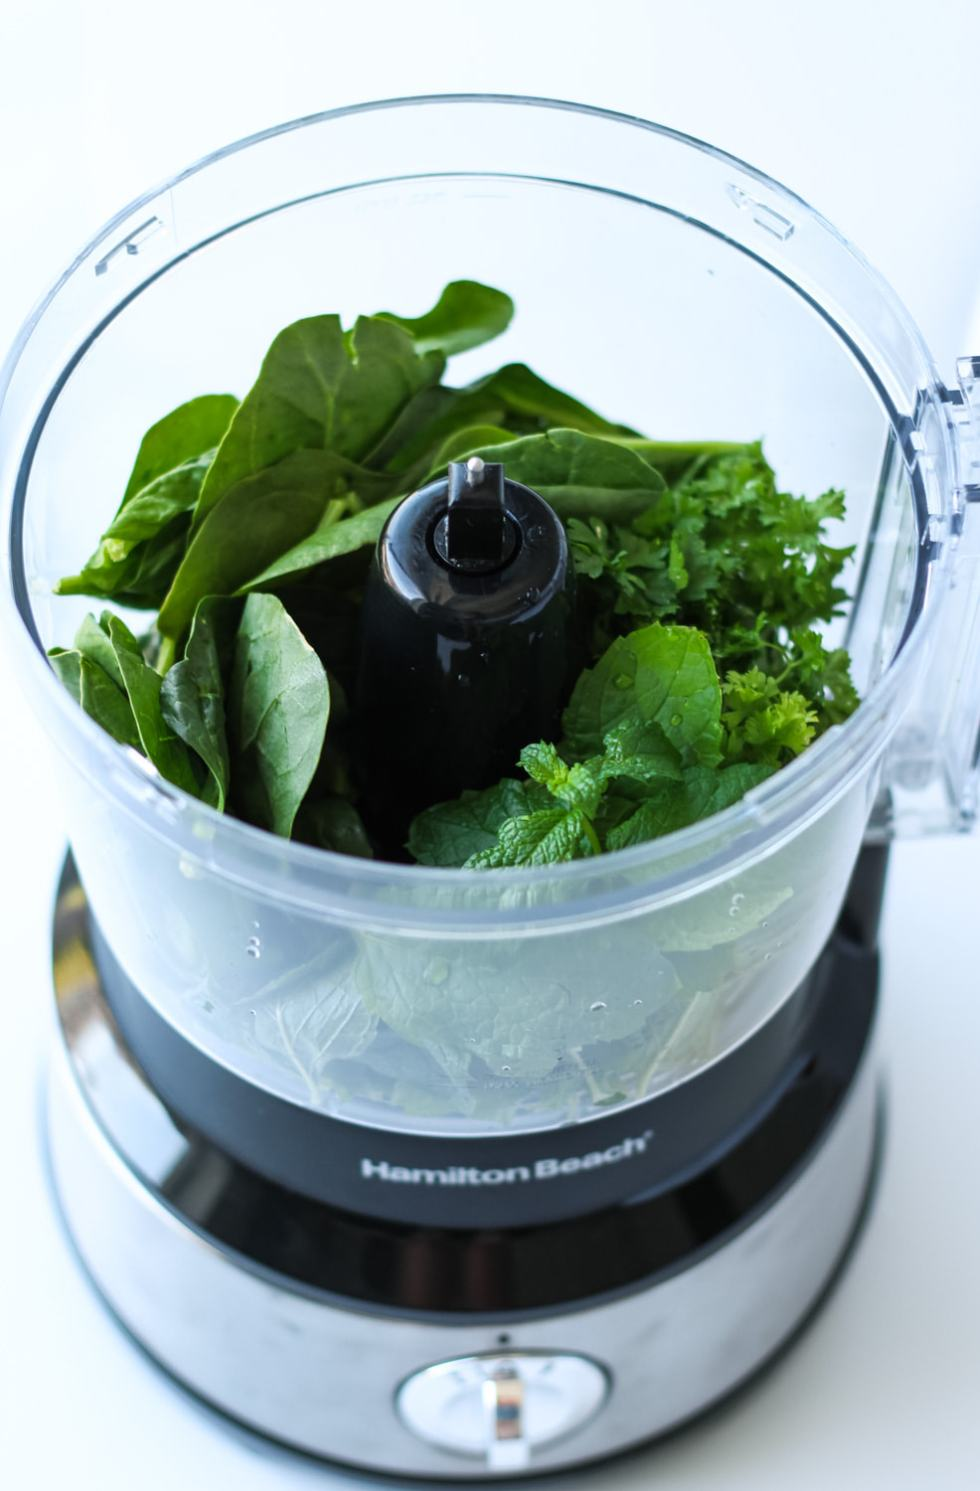 spinach and herbs in a food processor